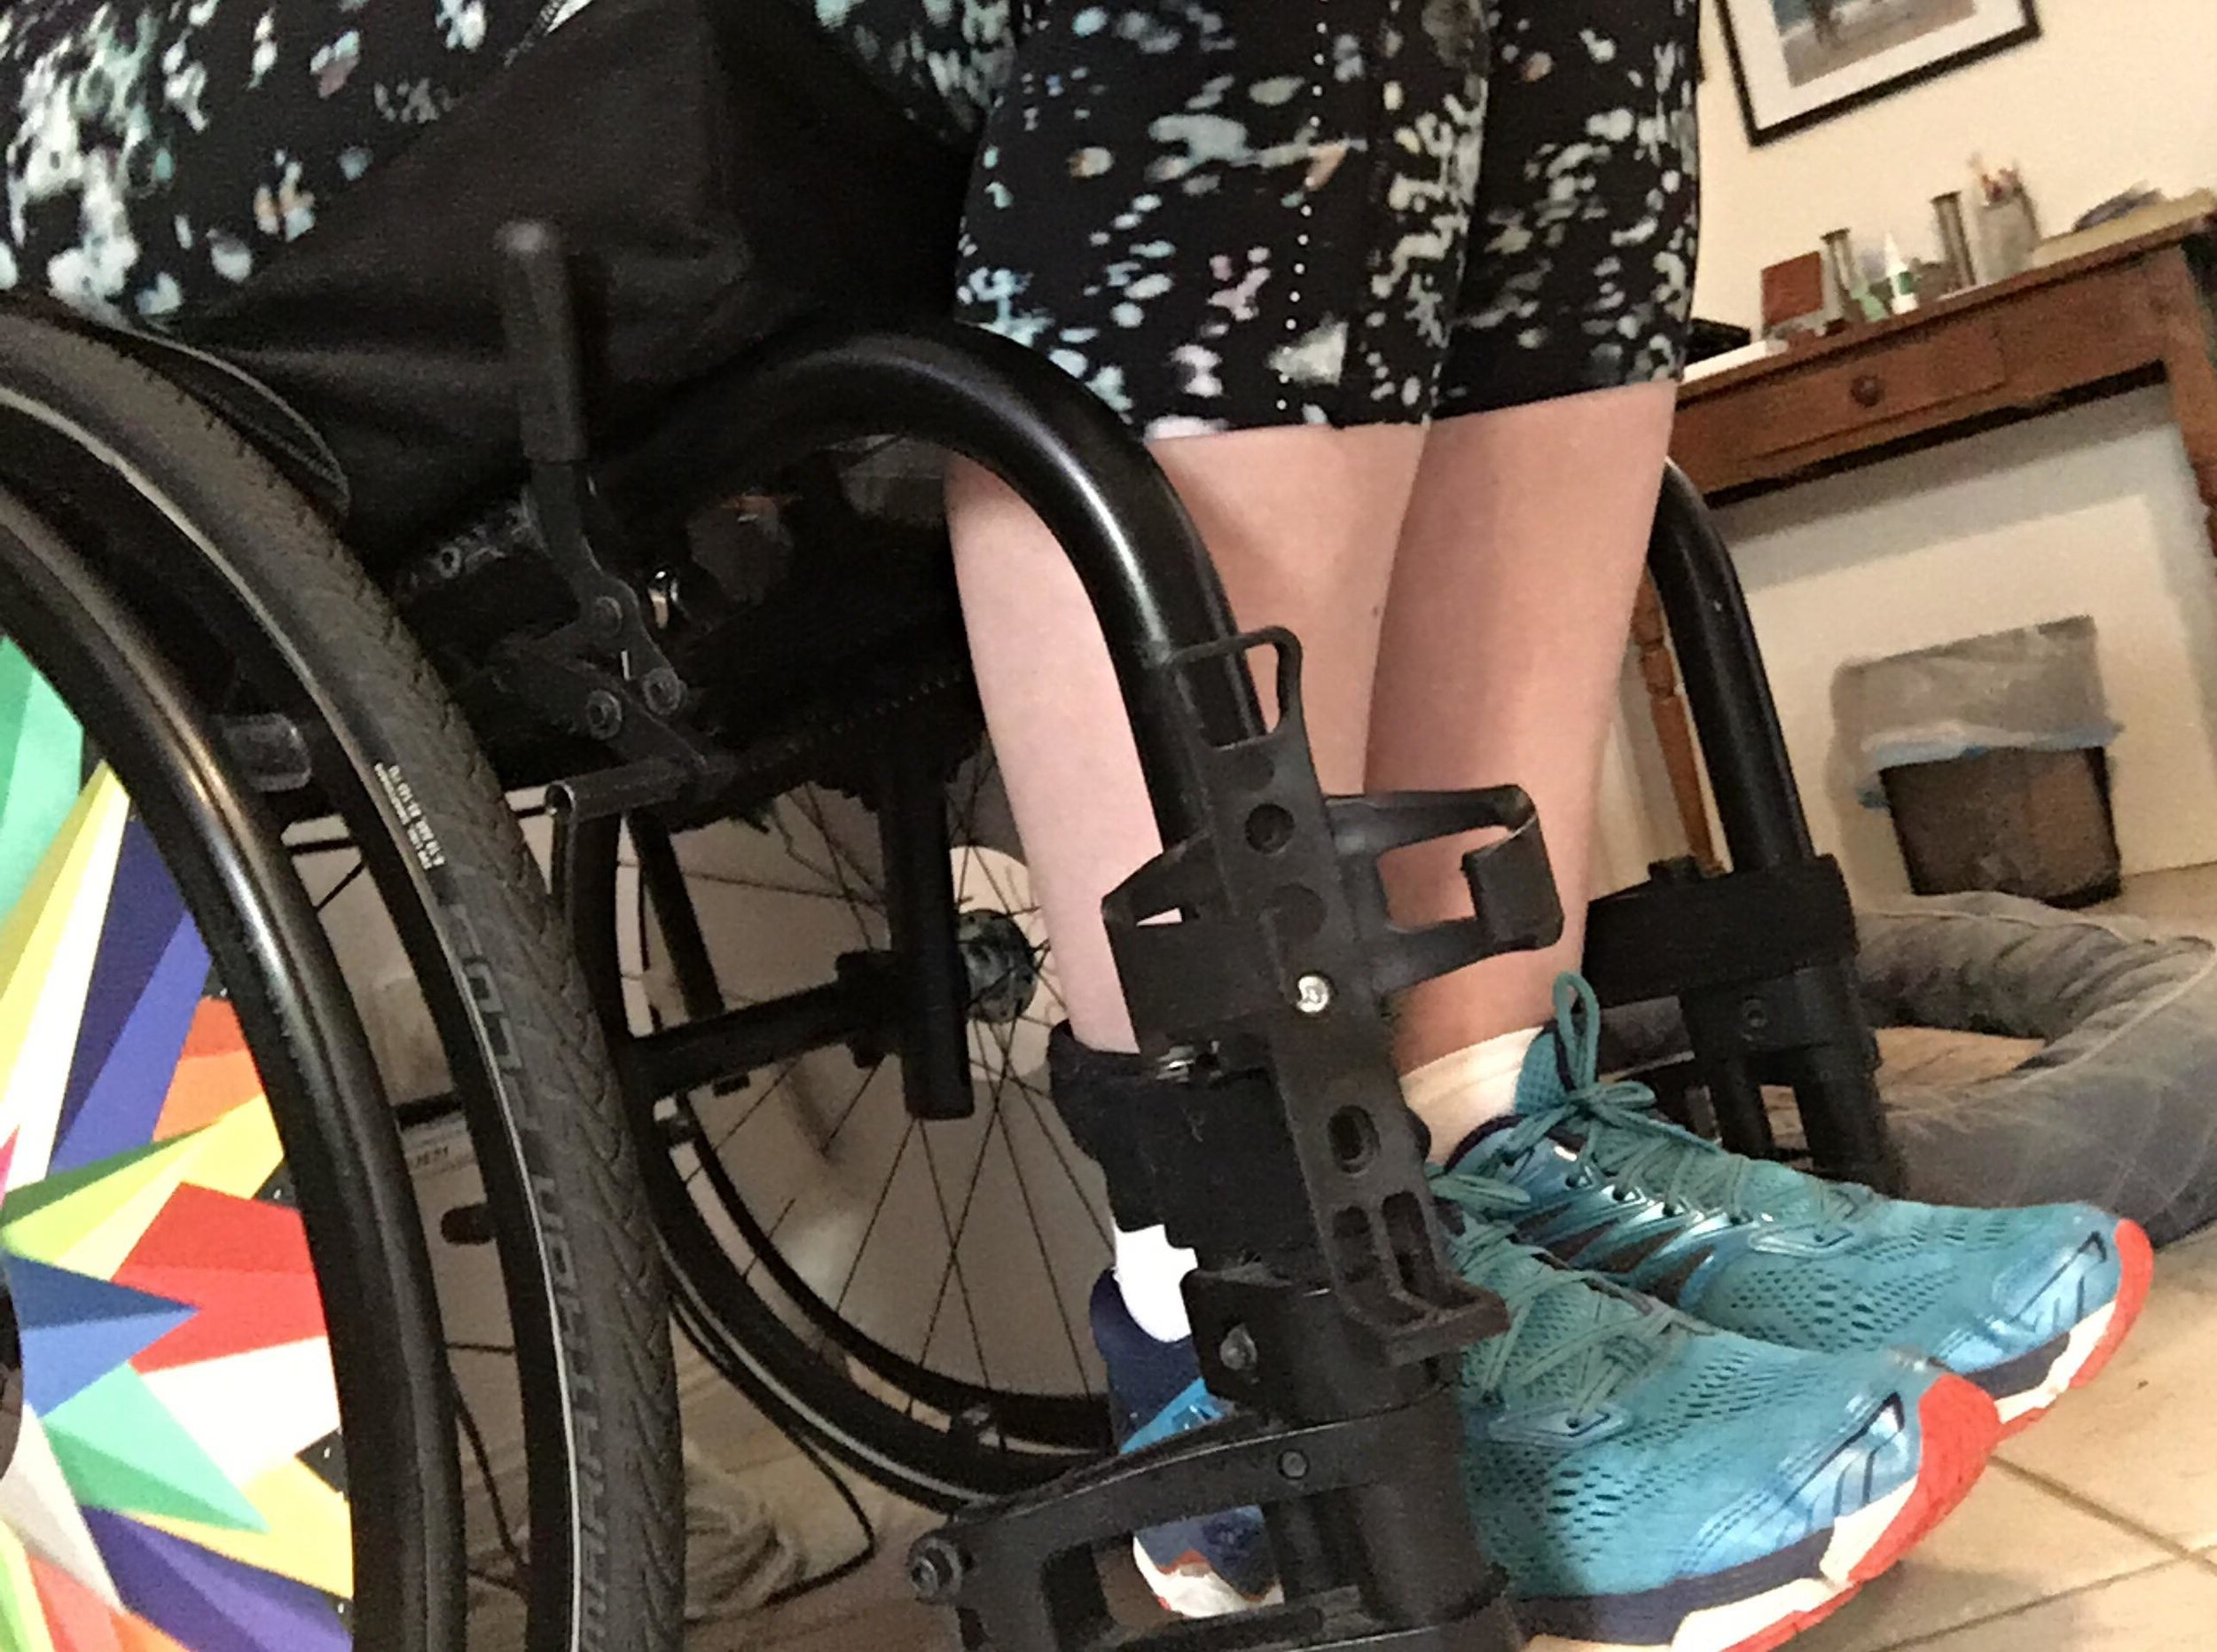 [Image description: A photograph of my legs in a wheelchair. The wheelchair frame is only partially visible, but you can see it is black, with rainbow spoke guards. I am wearing blue runners and black three-quarter-length tights with blue spots.]